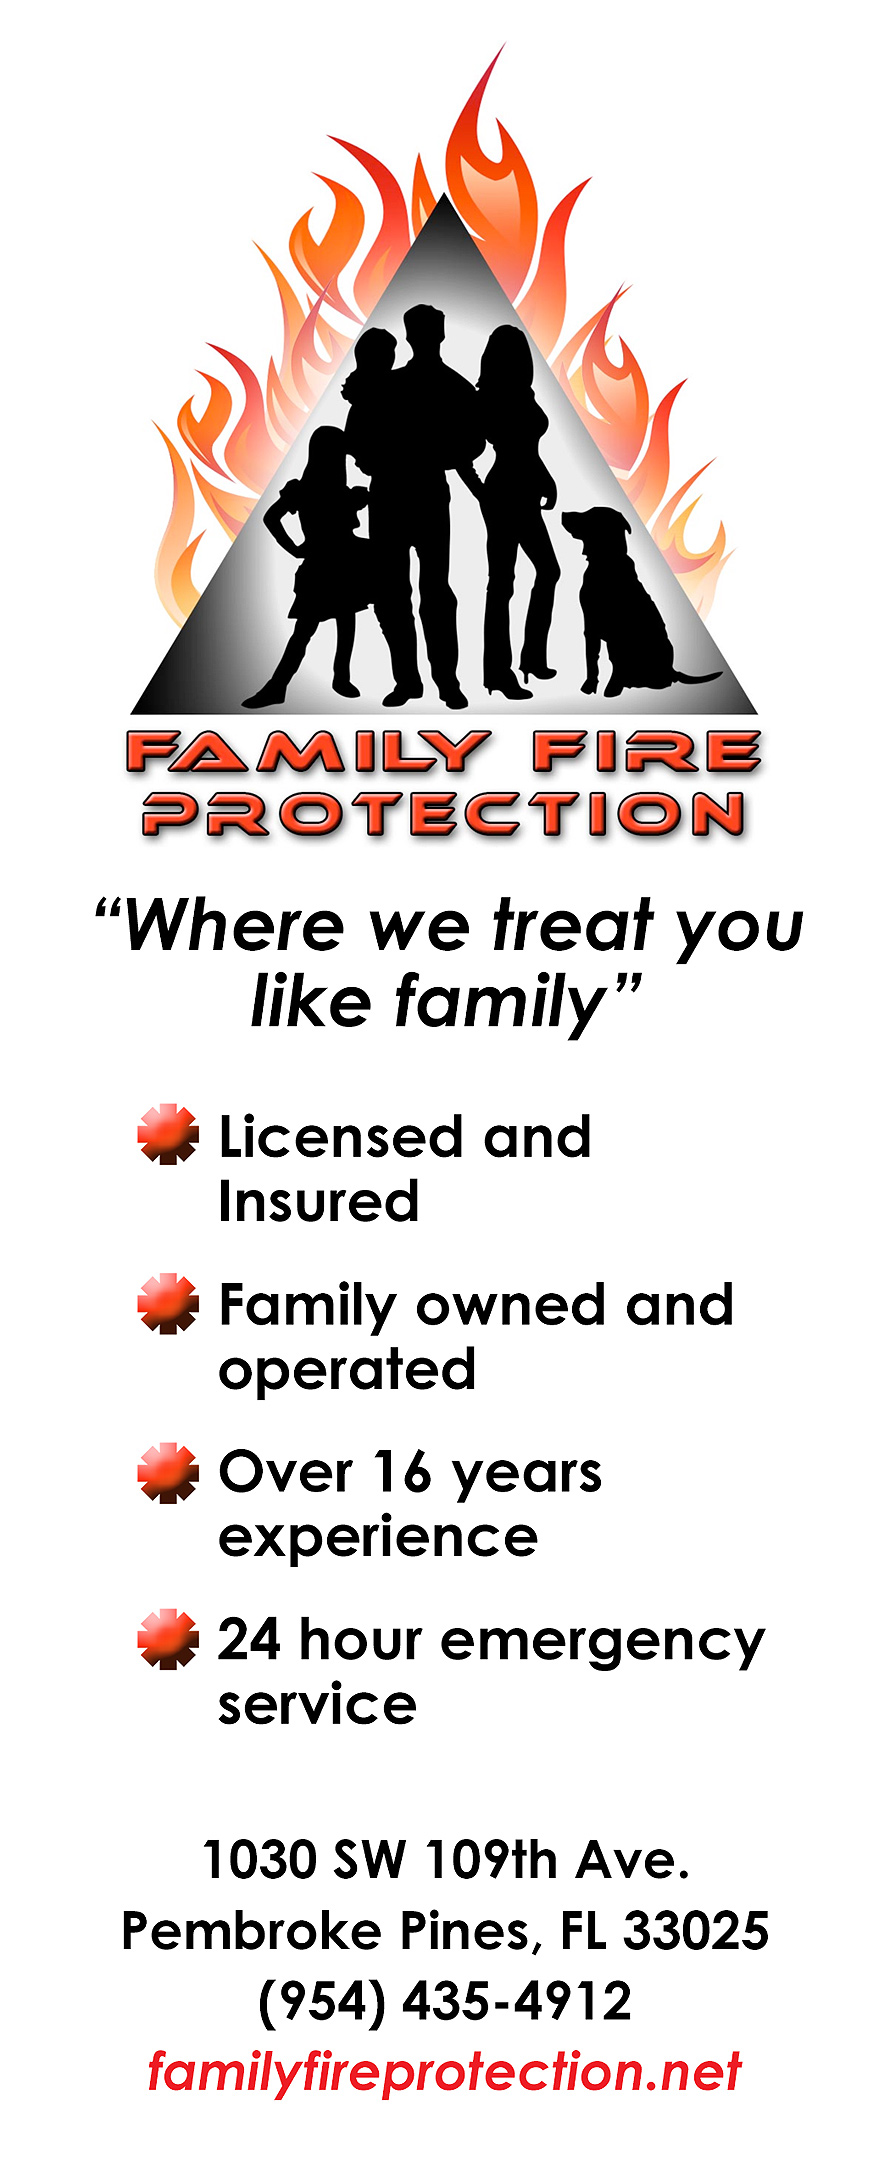 Family Fire Protection Where We Treat You Like Family